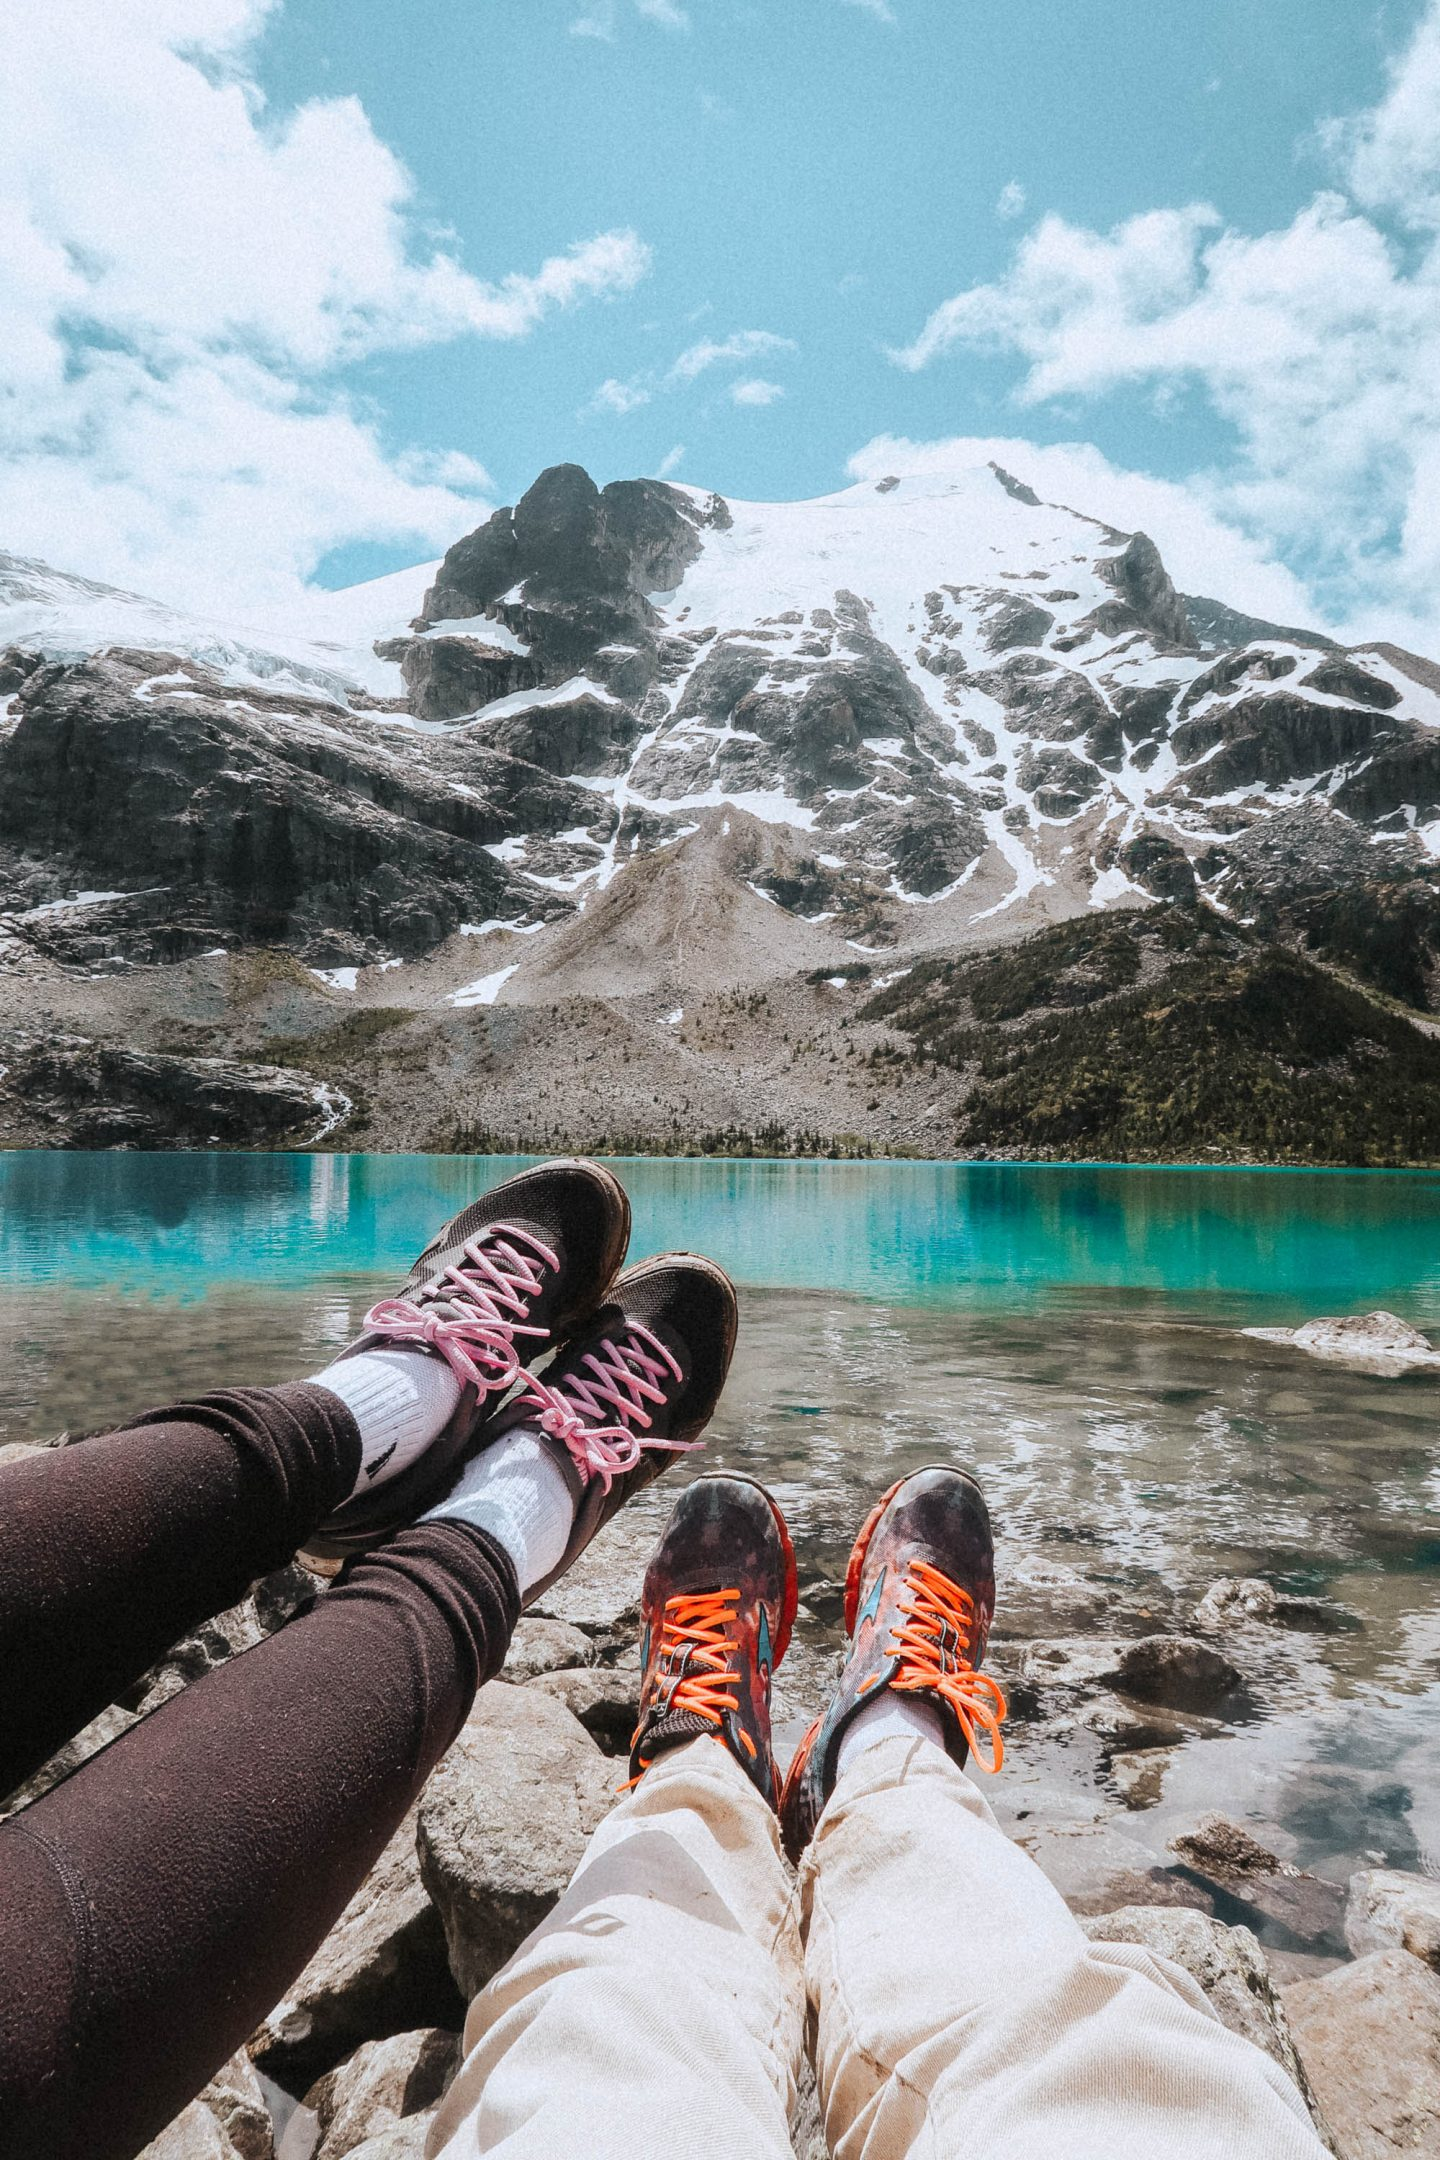 Showing our hiking shoes near Joffre Lakes and mountains